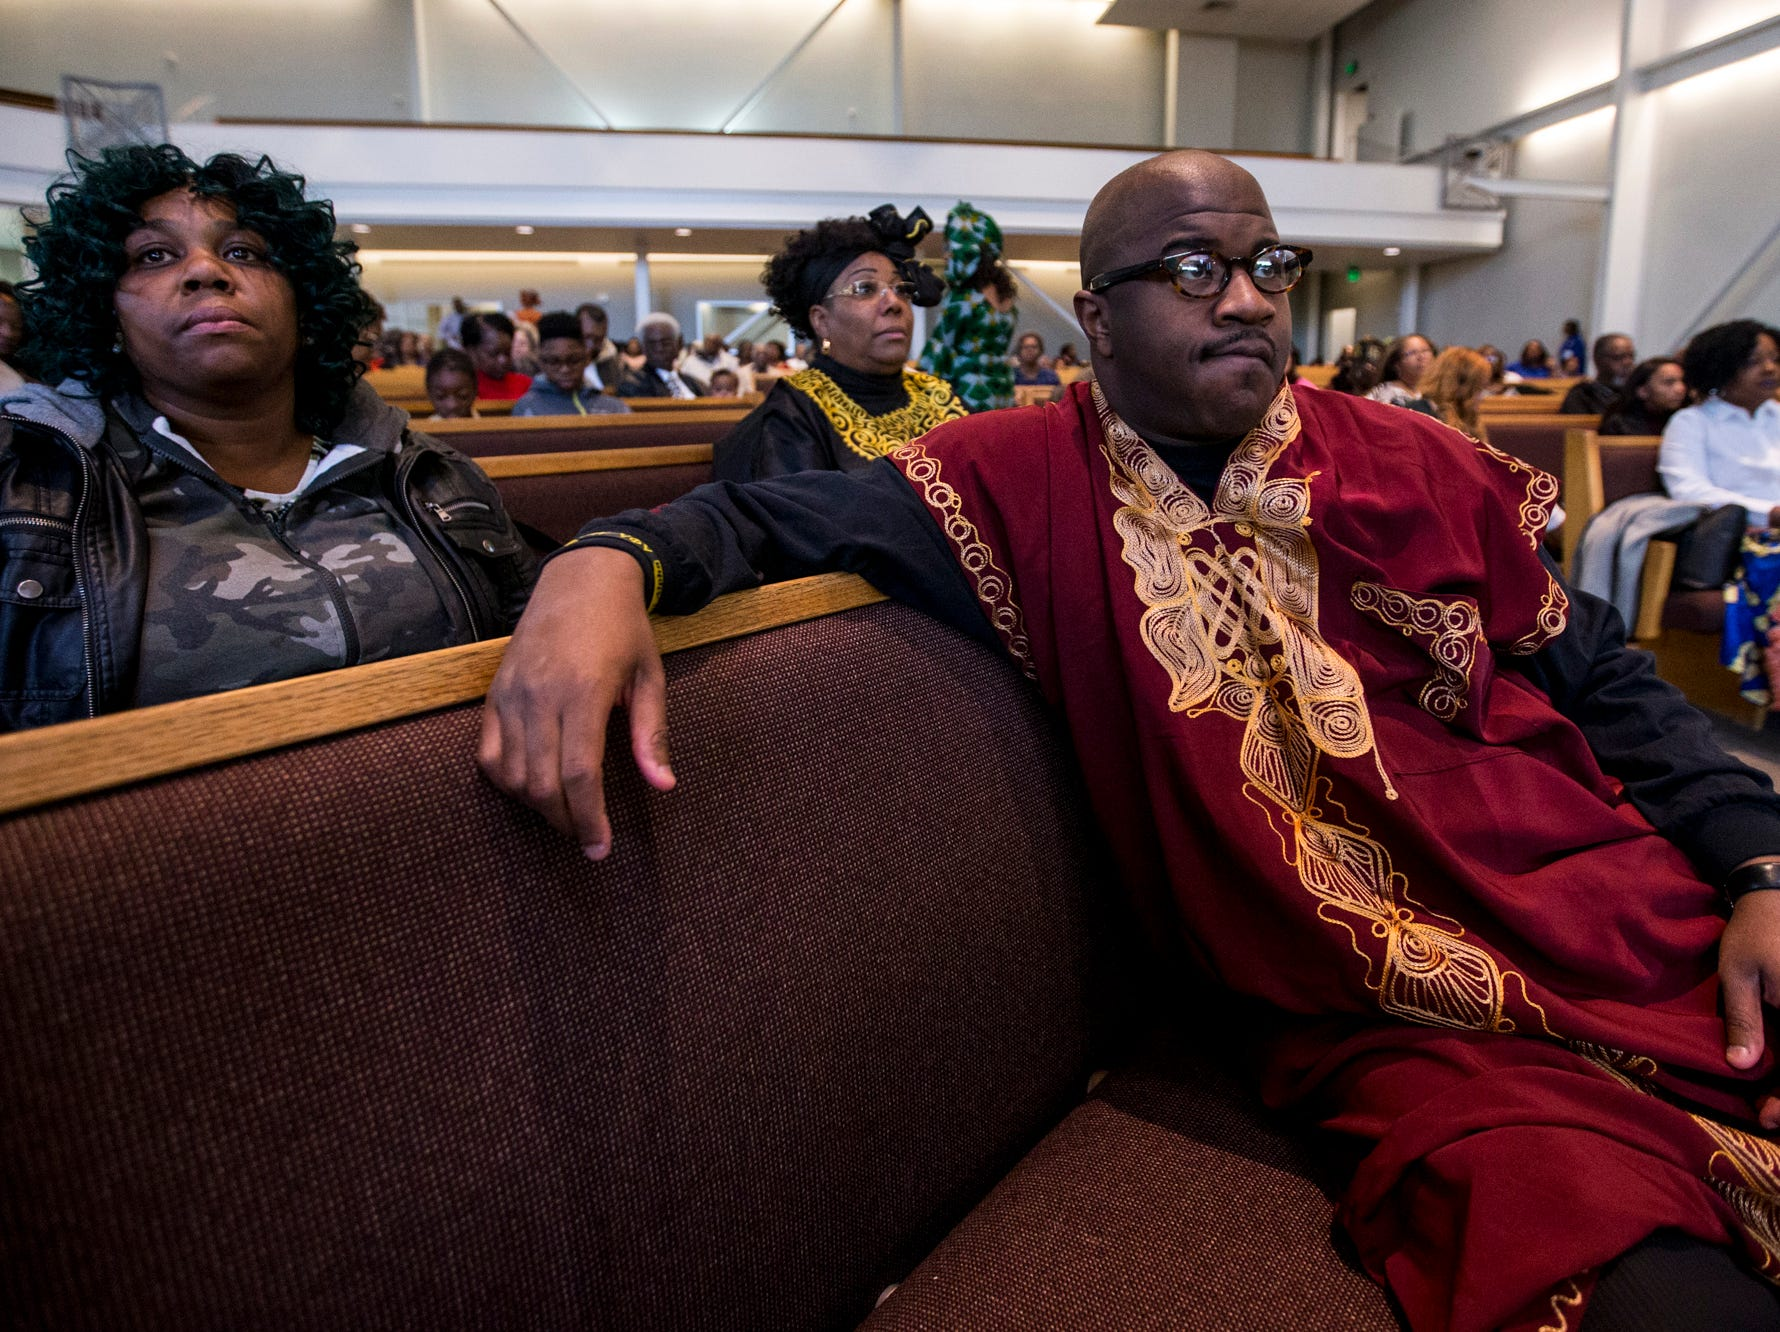 Pastor Terry Mackey listens during the 7:30 a.m. service on Feb. 24, 2019, at Pilgrim Rest Baptist Church in Phoenix. Mackey was appointed to replace the late Bishop Alexis Thomas.